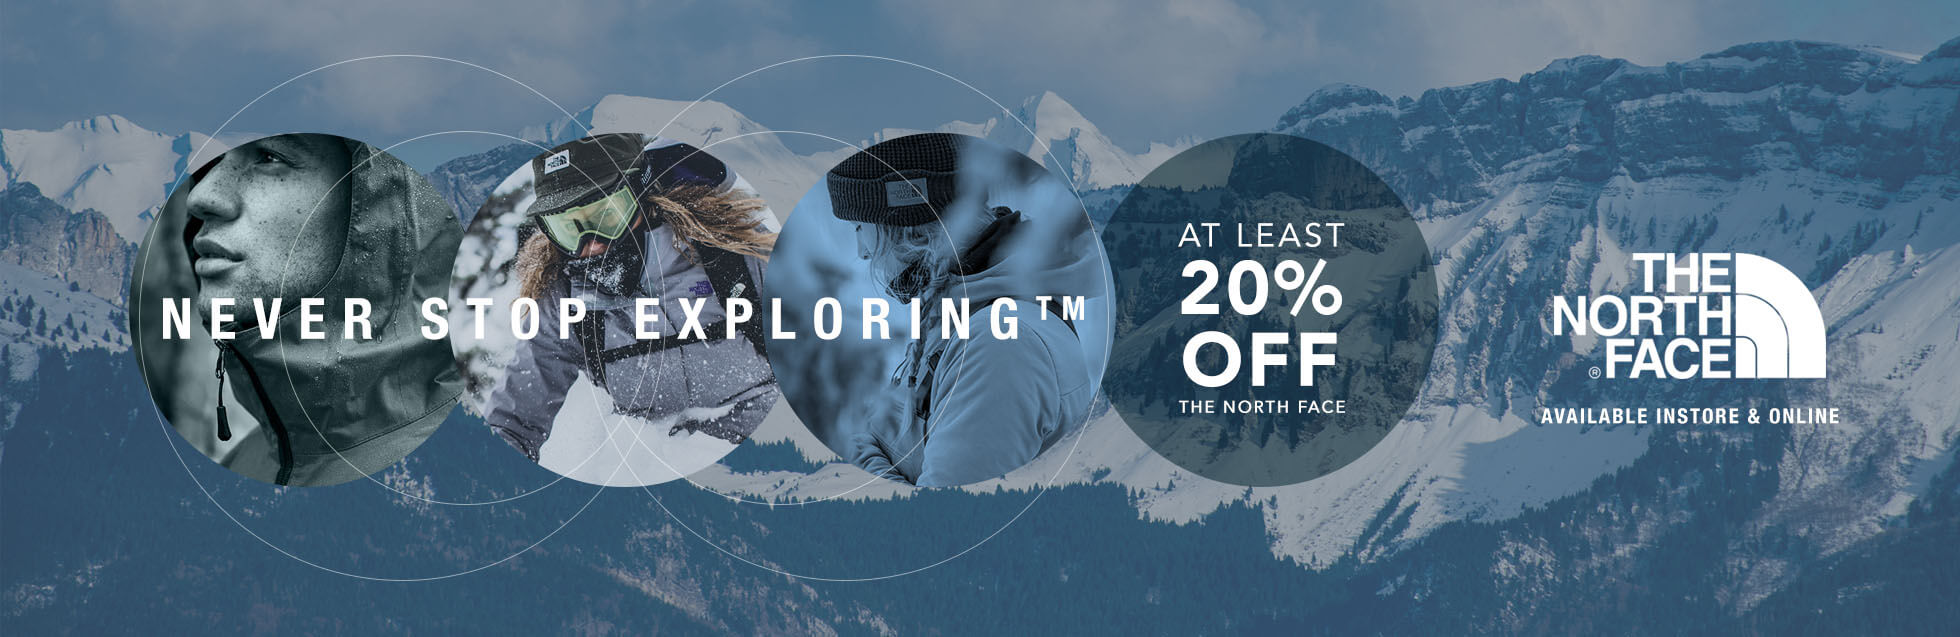 The North Face 20% Off